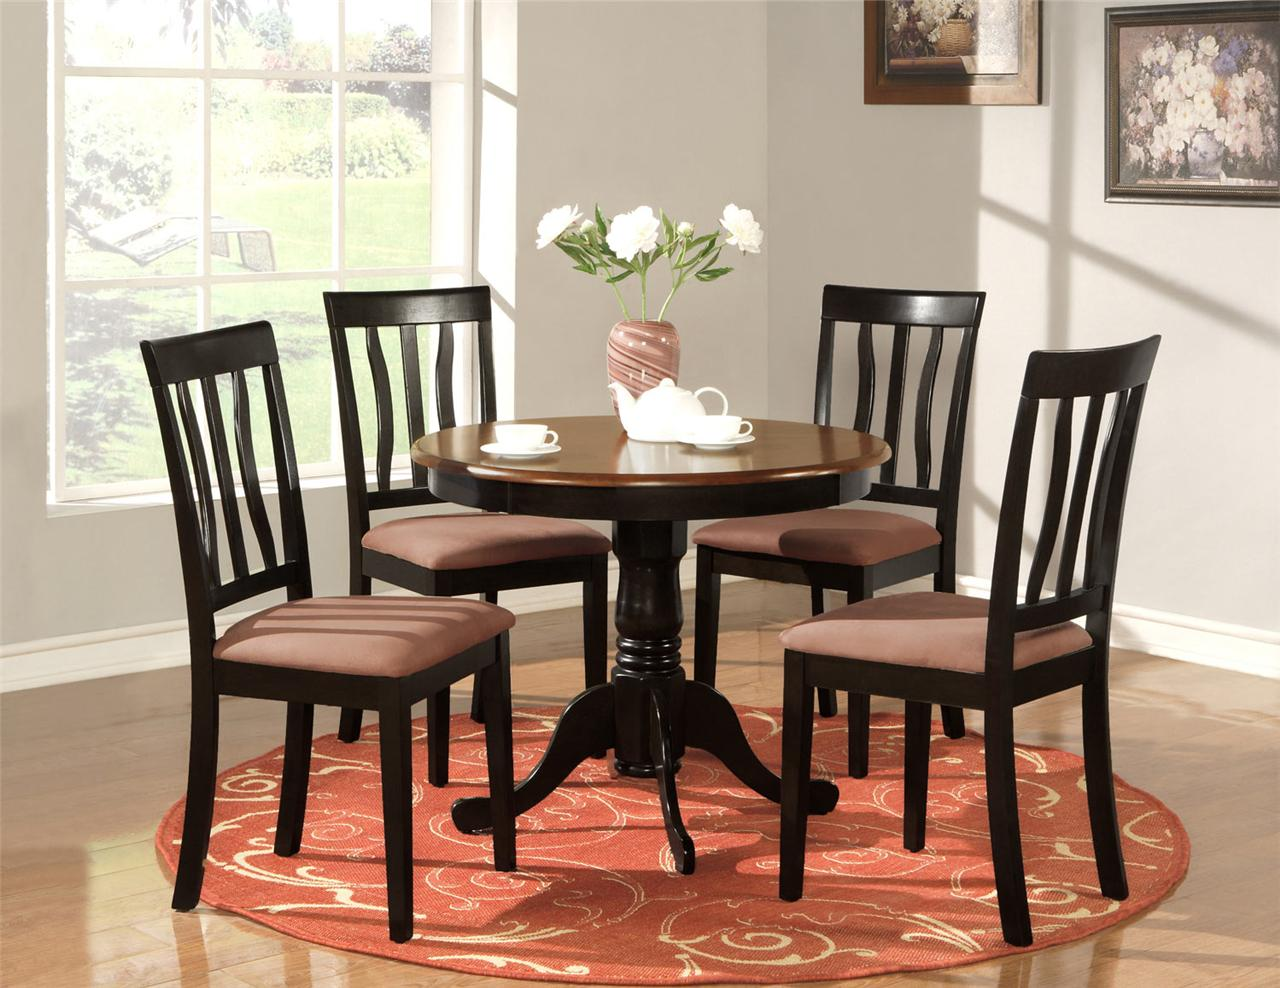 5 pc round table dinette kitchen table 4 chairs oak ebay On kitchen table and 4 chairs